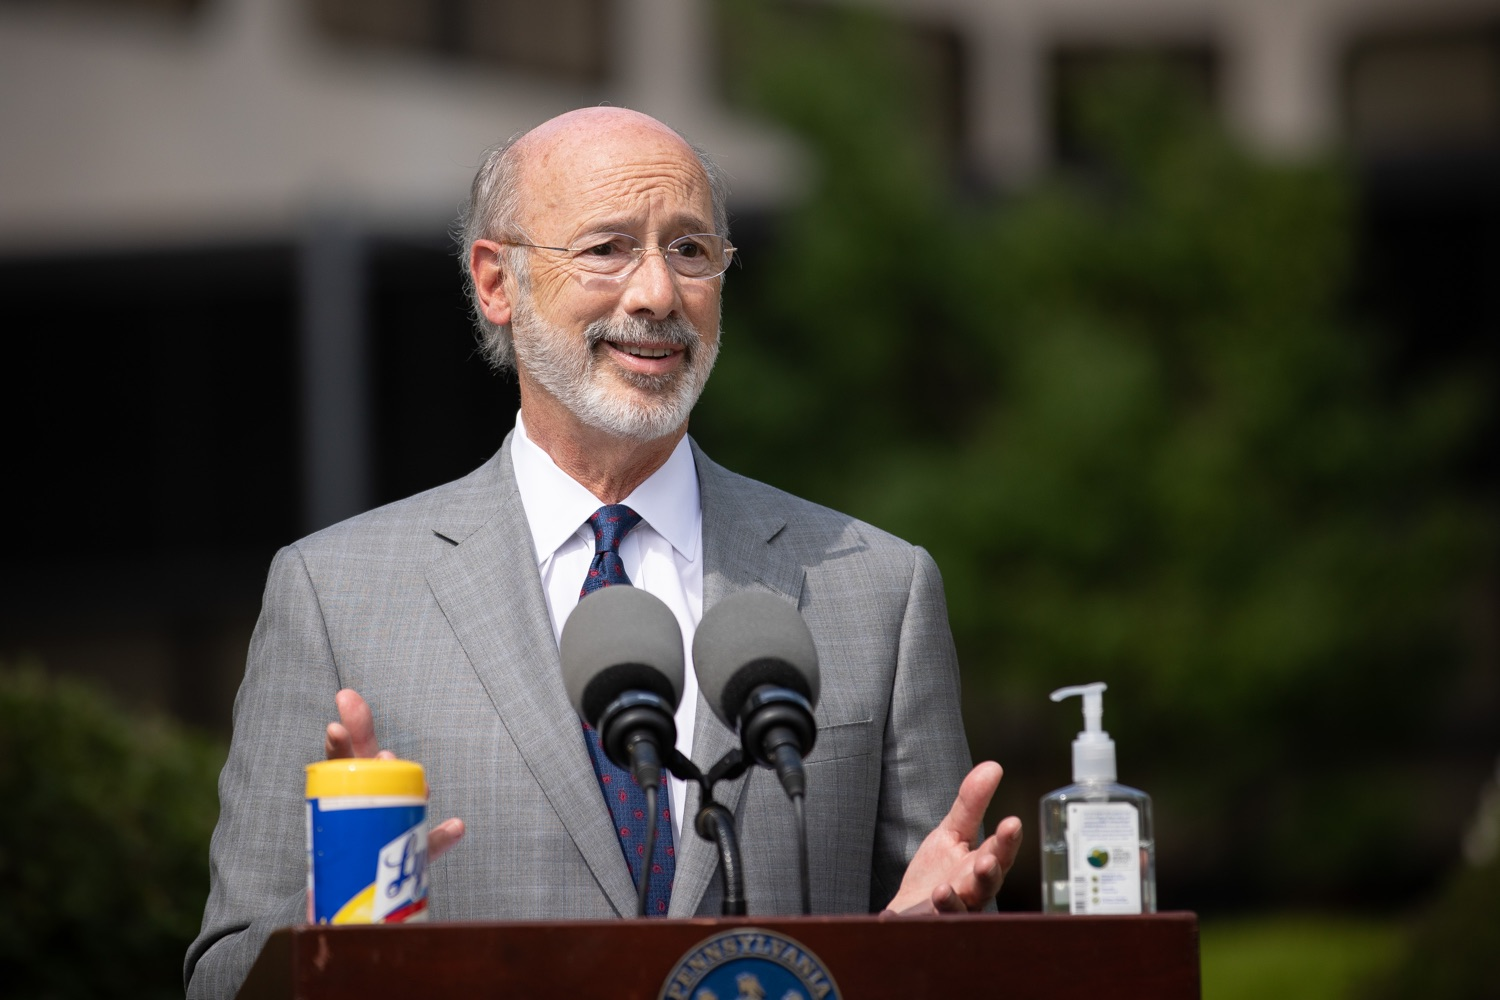 "<a href=""https://filesource.wostreaming.net/commonwealthofpa/photo/18093_gov-healthcare_workers_dz_02.jpg"" target=""_blank"">⇣ Download Photo<br></a>Pennsylvania Governor Tom Wolf answering questions from the press during his visit to Milton S. Hershey Medical Center. As the commonwealth continues its measured, phased reopening and COVID-19 case counts continue to decline, Governor Tom Wolf visited Penn State Milton S. Hershey Medical Center today to thank staff and learn more about how the facility is handling the pandemic and preparing for a possible resurgence in the fall.  Harrisburg, PA  June 24, 2020"